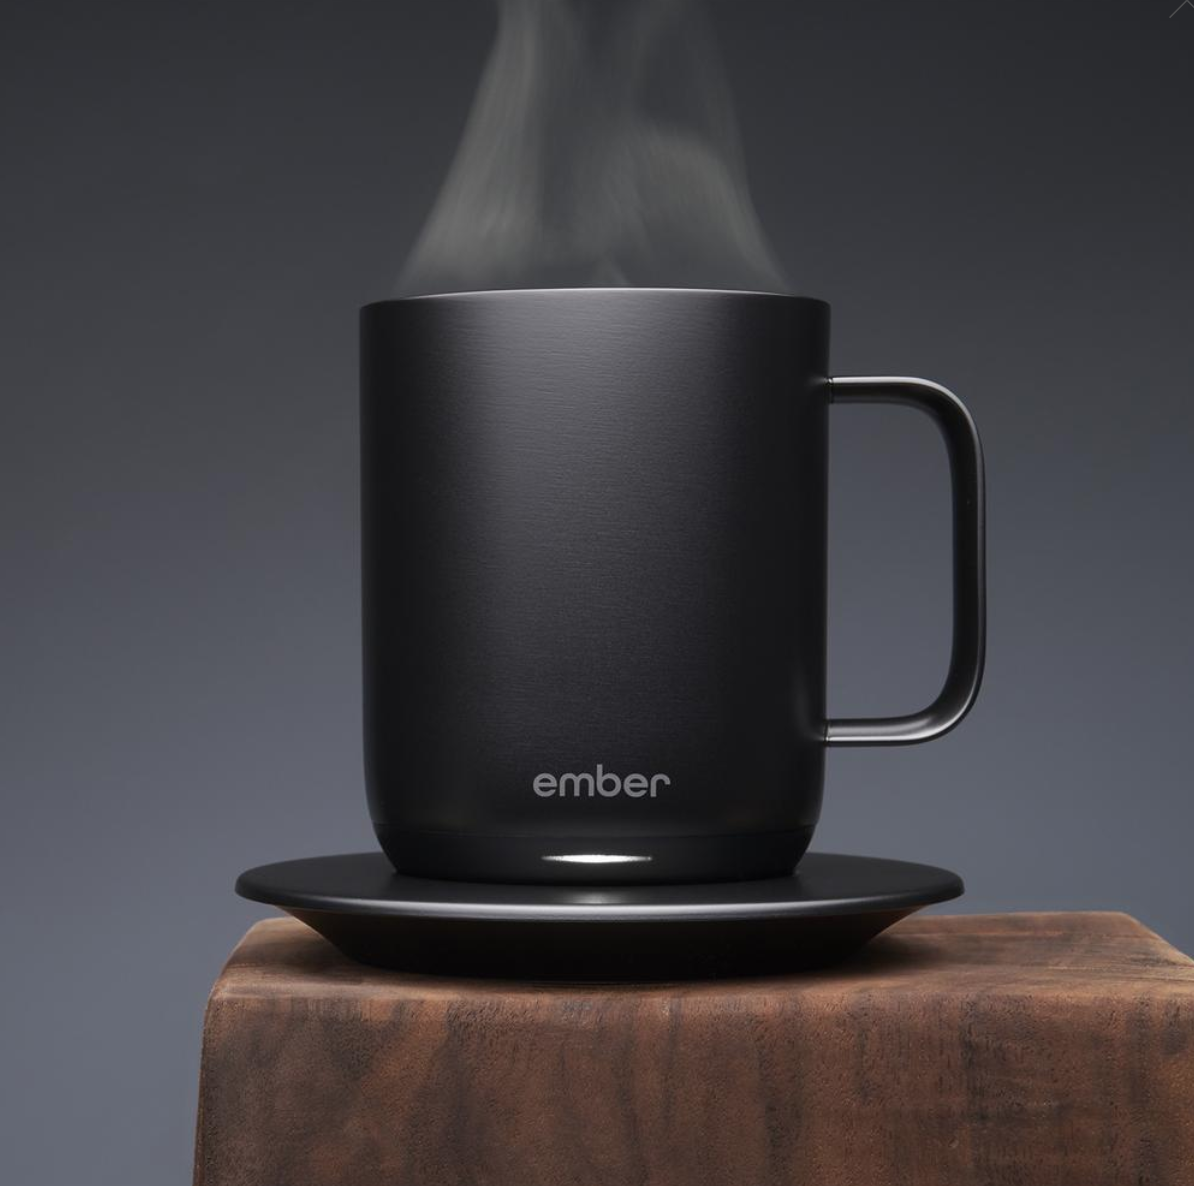 ad3a4579cd9 Ember, the World's First Temperature Control Mug, Launches in UK ...